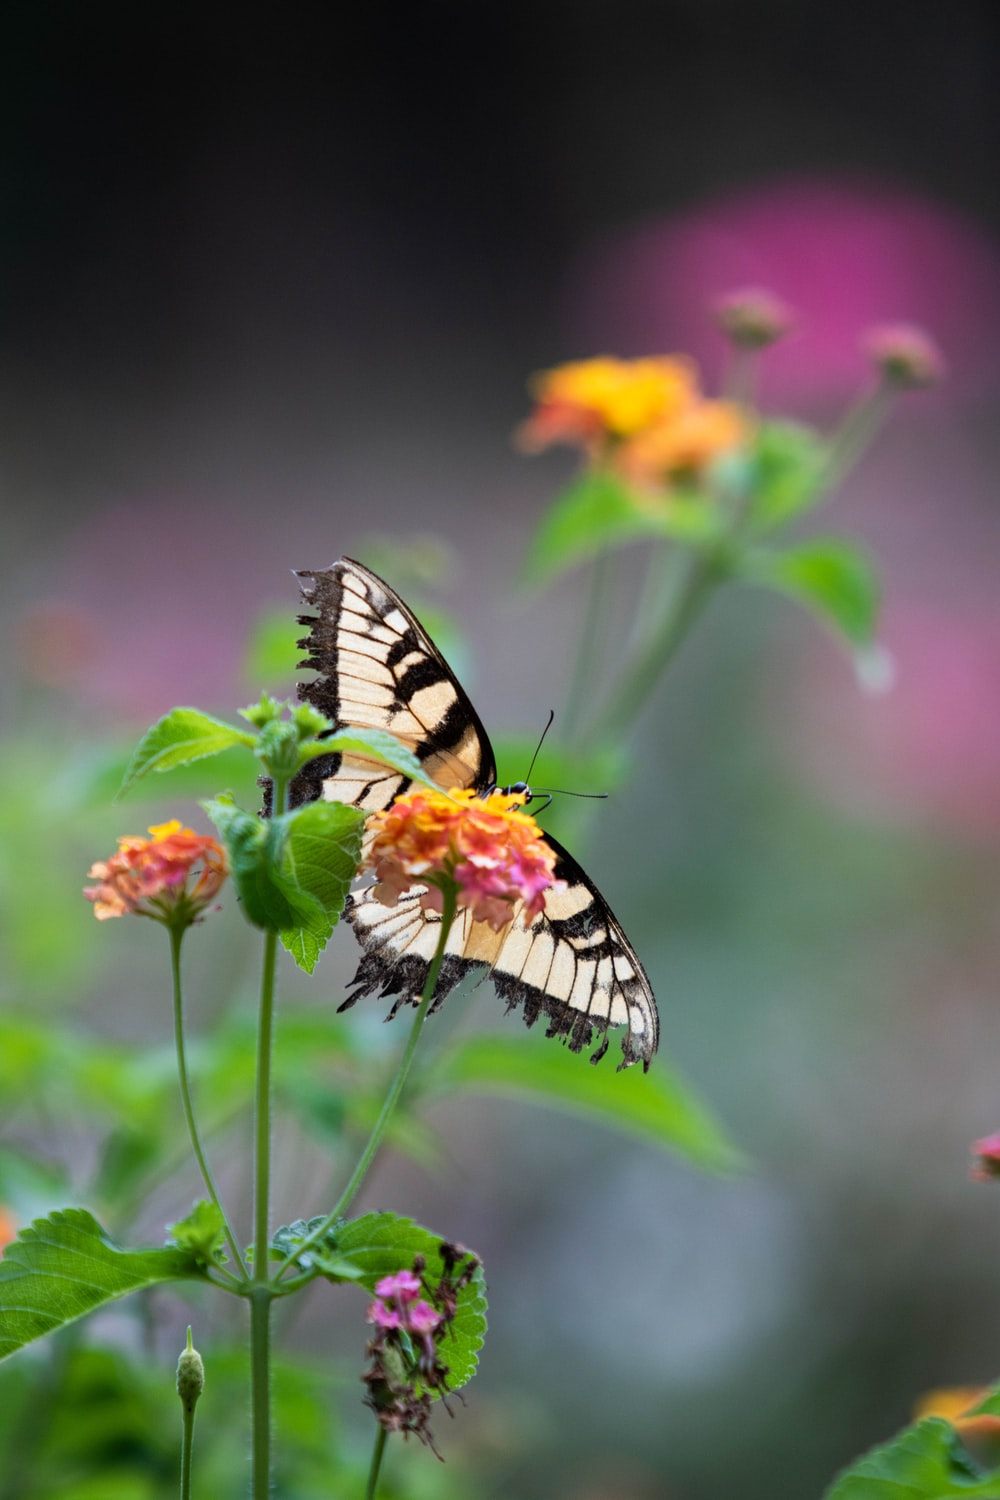 tiger swallowtail butterfly perched on yellow and pink flower in close up photography during daytime